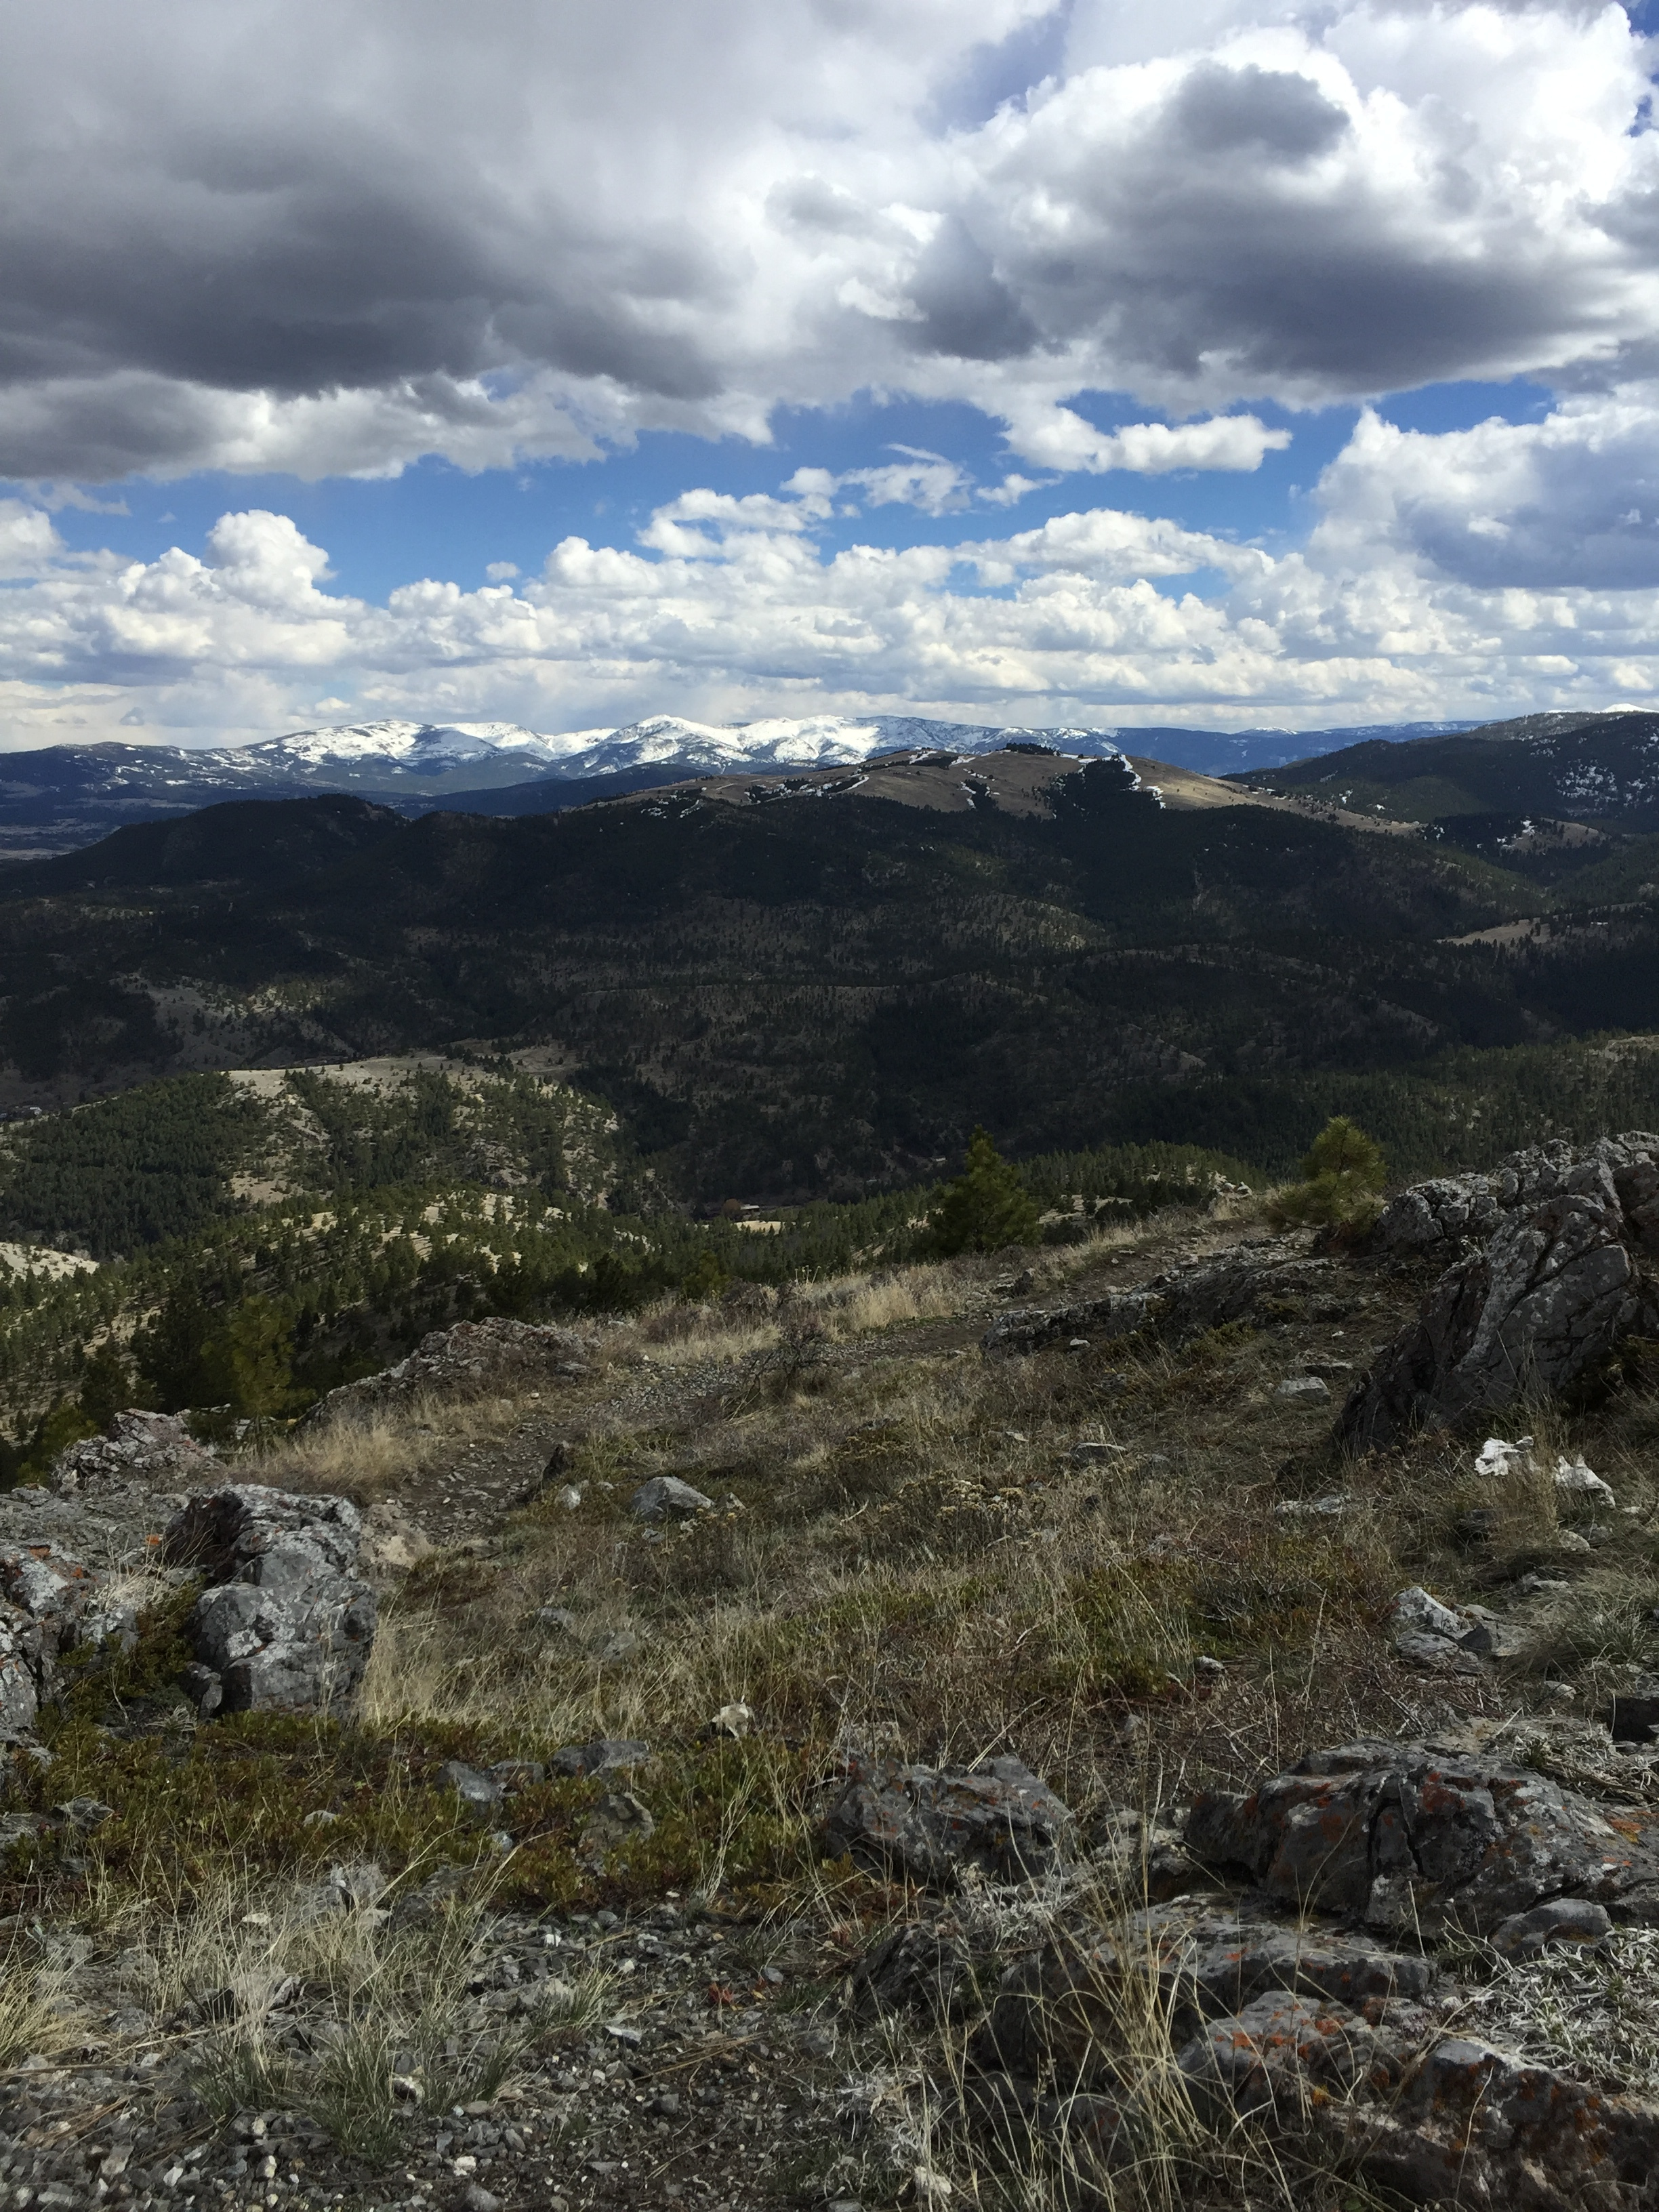 Mt. Helena Summit, April 19, 2019